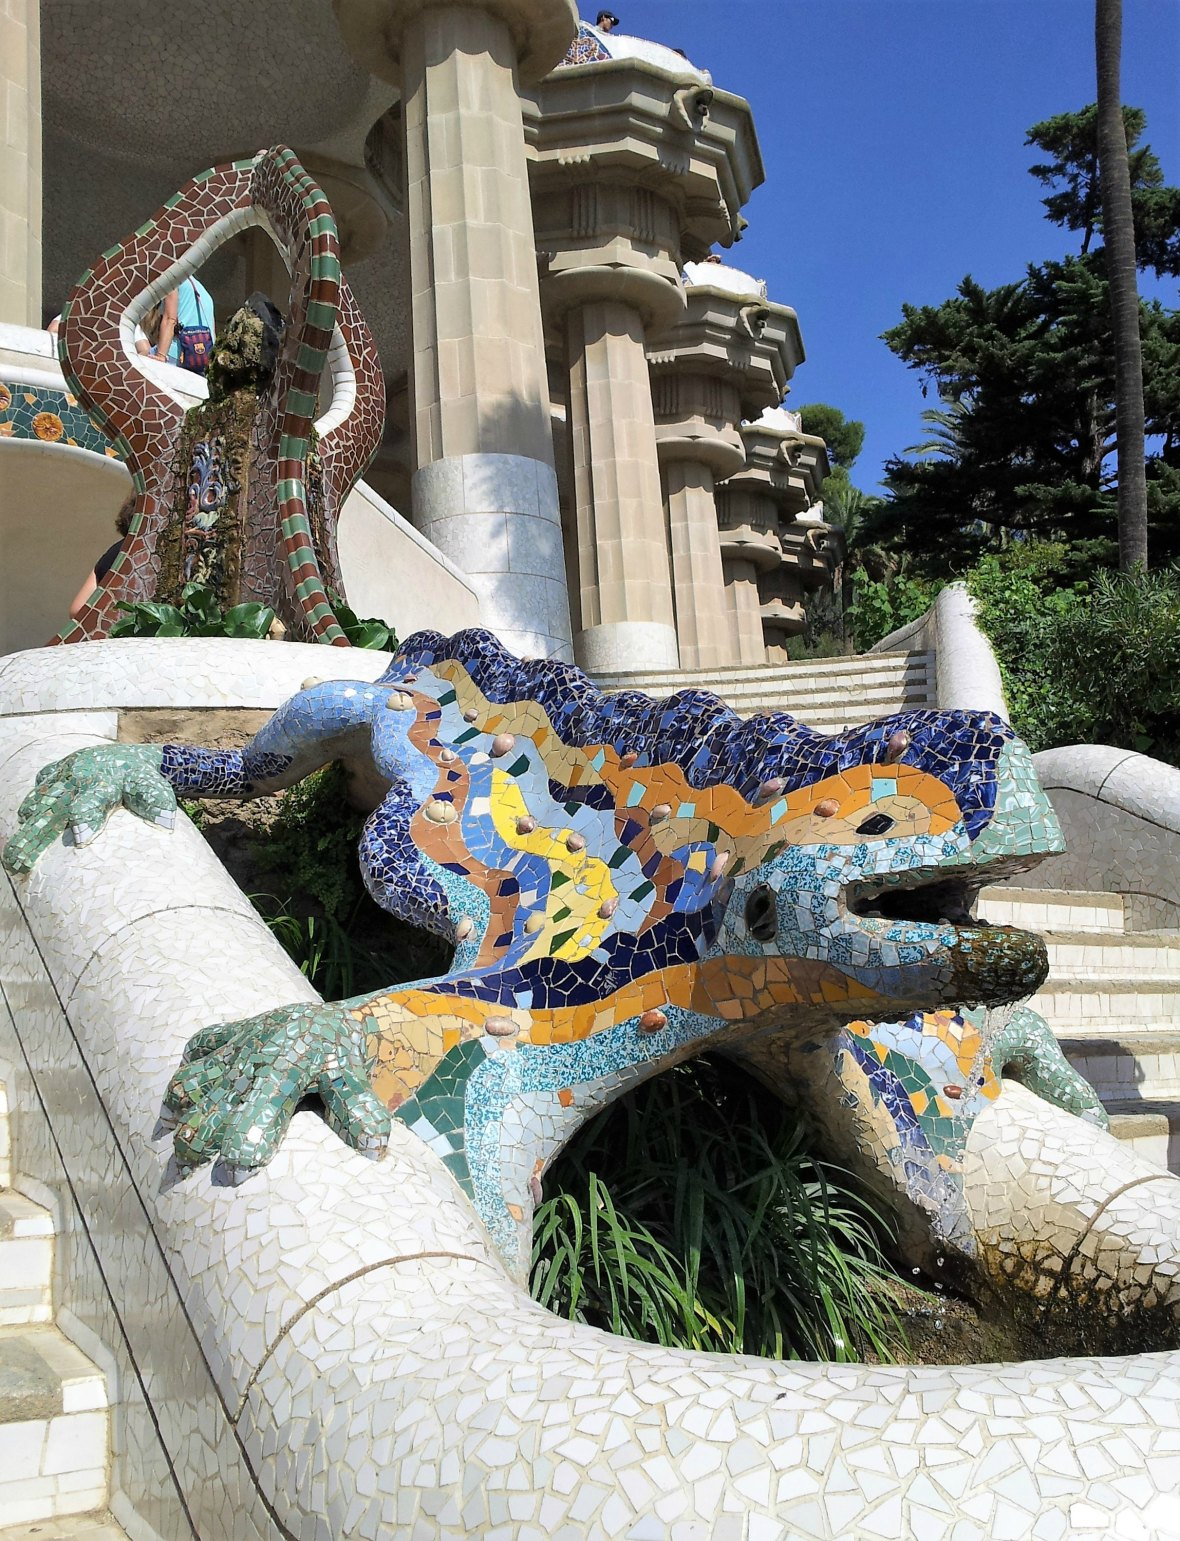 Barcelone - Parc Guell (9)